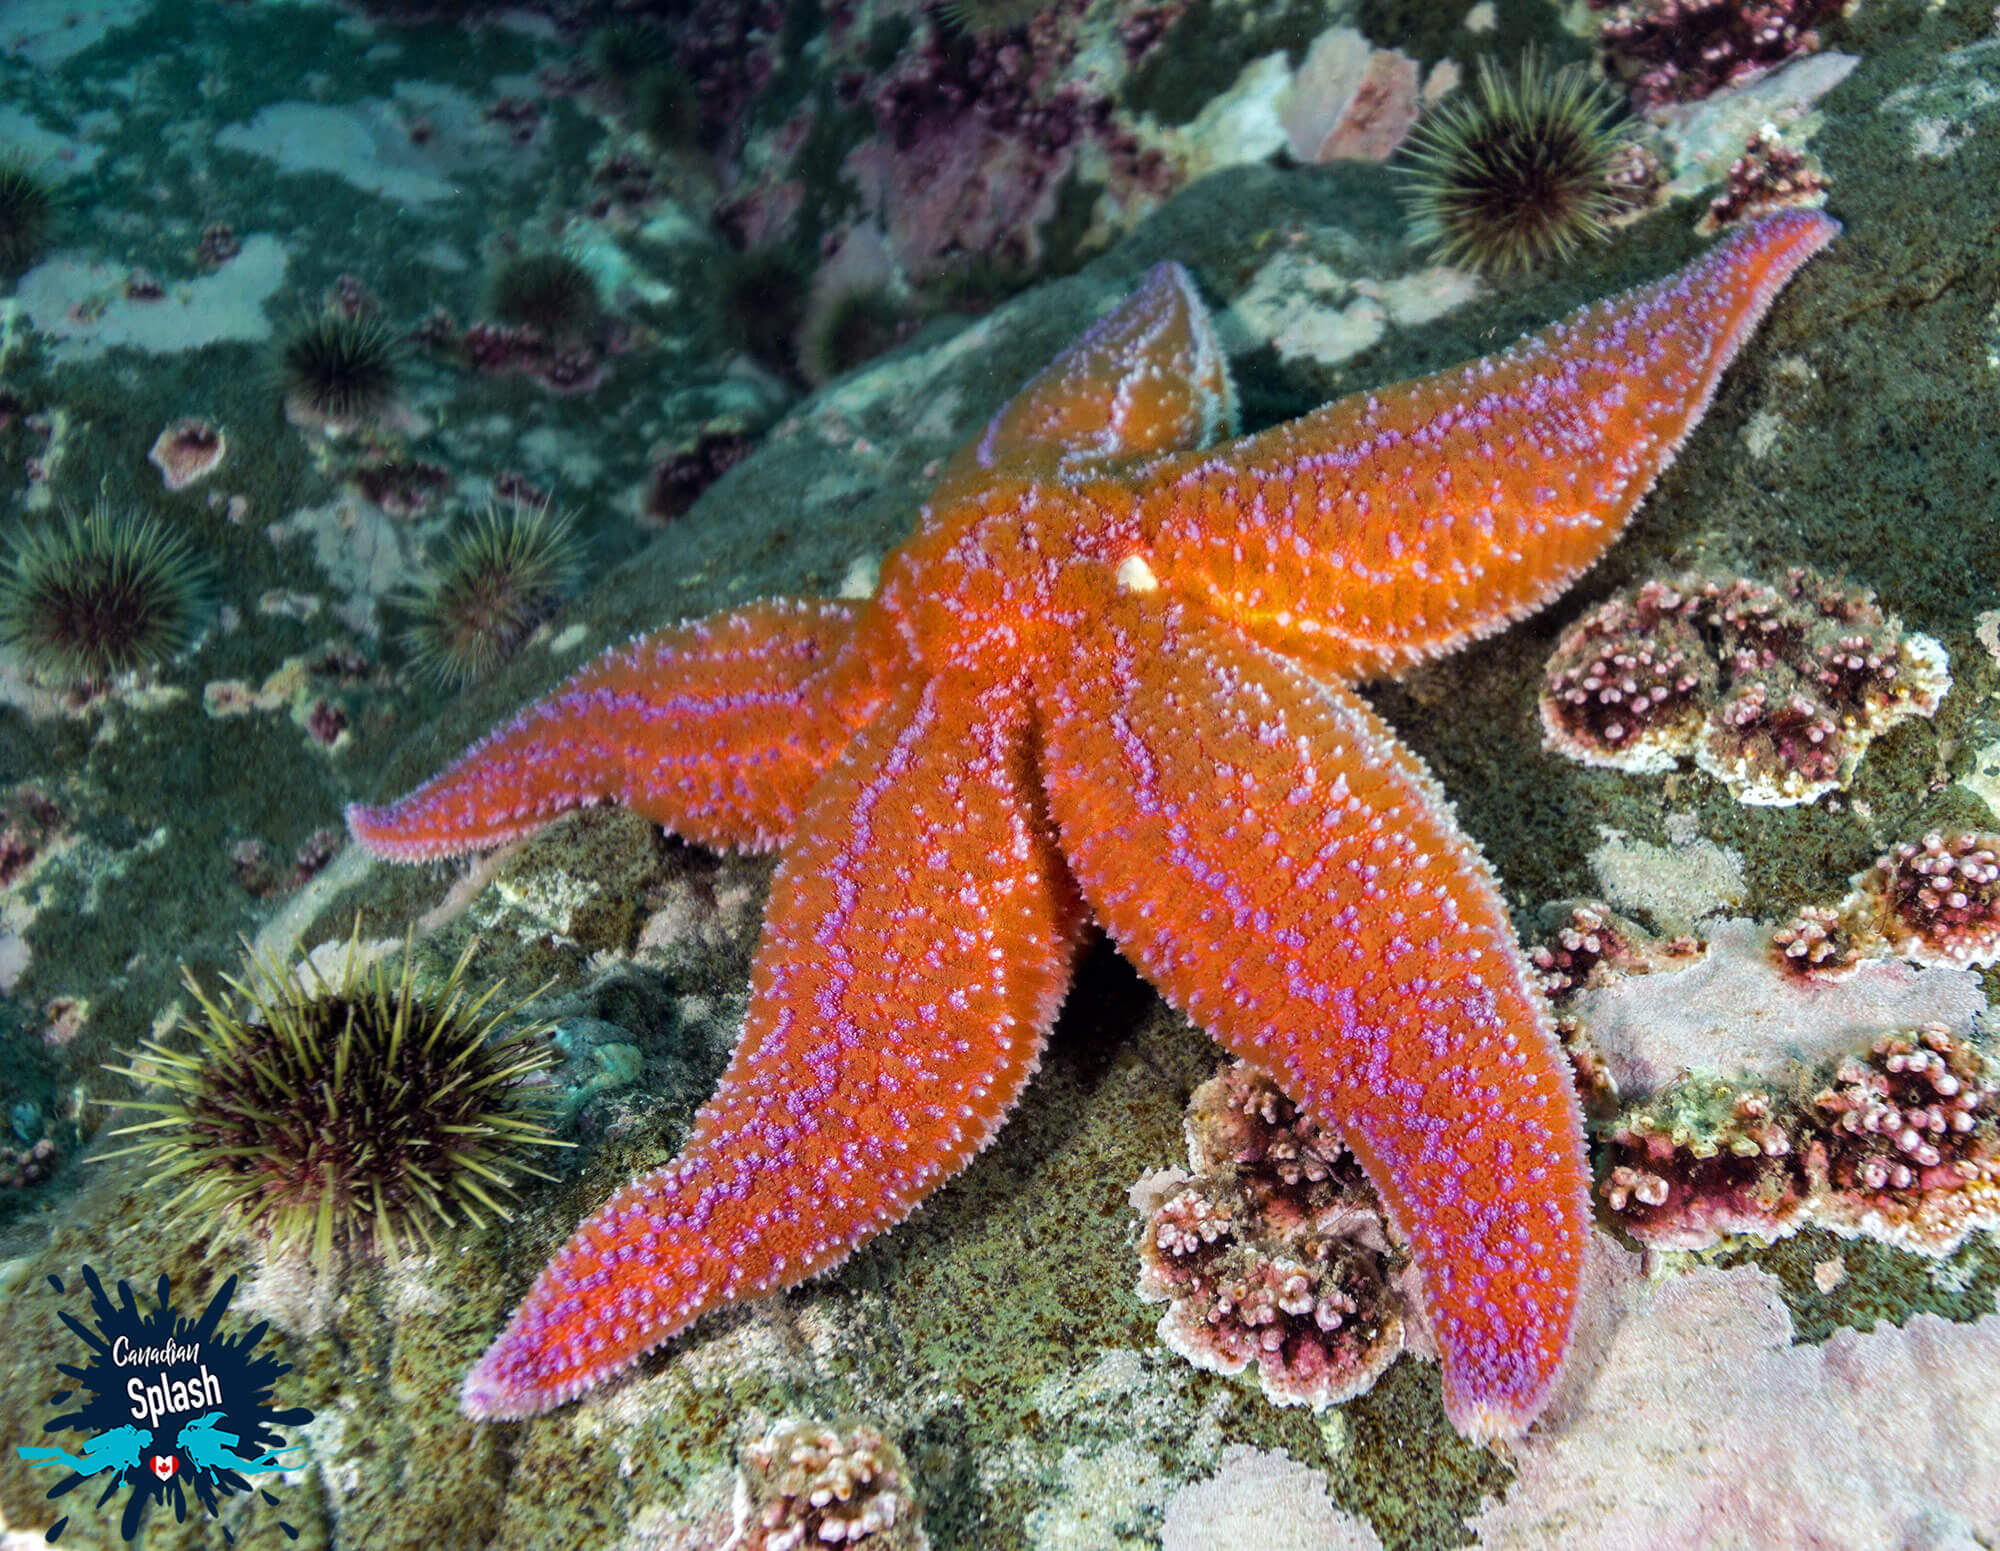 A Wide Angle View Of A Large Sea Star On A Rock Wall In Newfoundland, Scuba Diving Canada